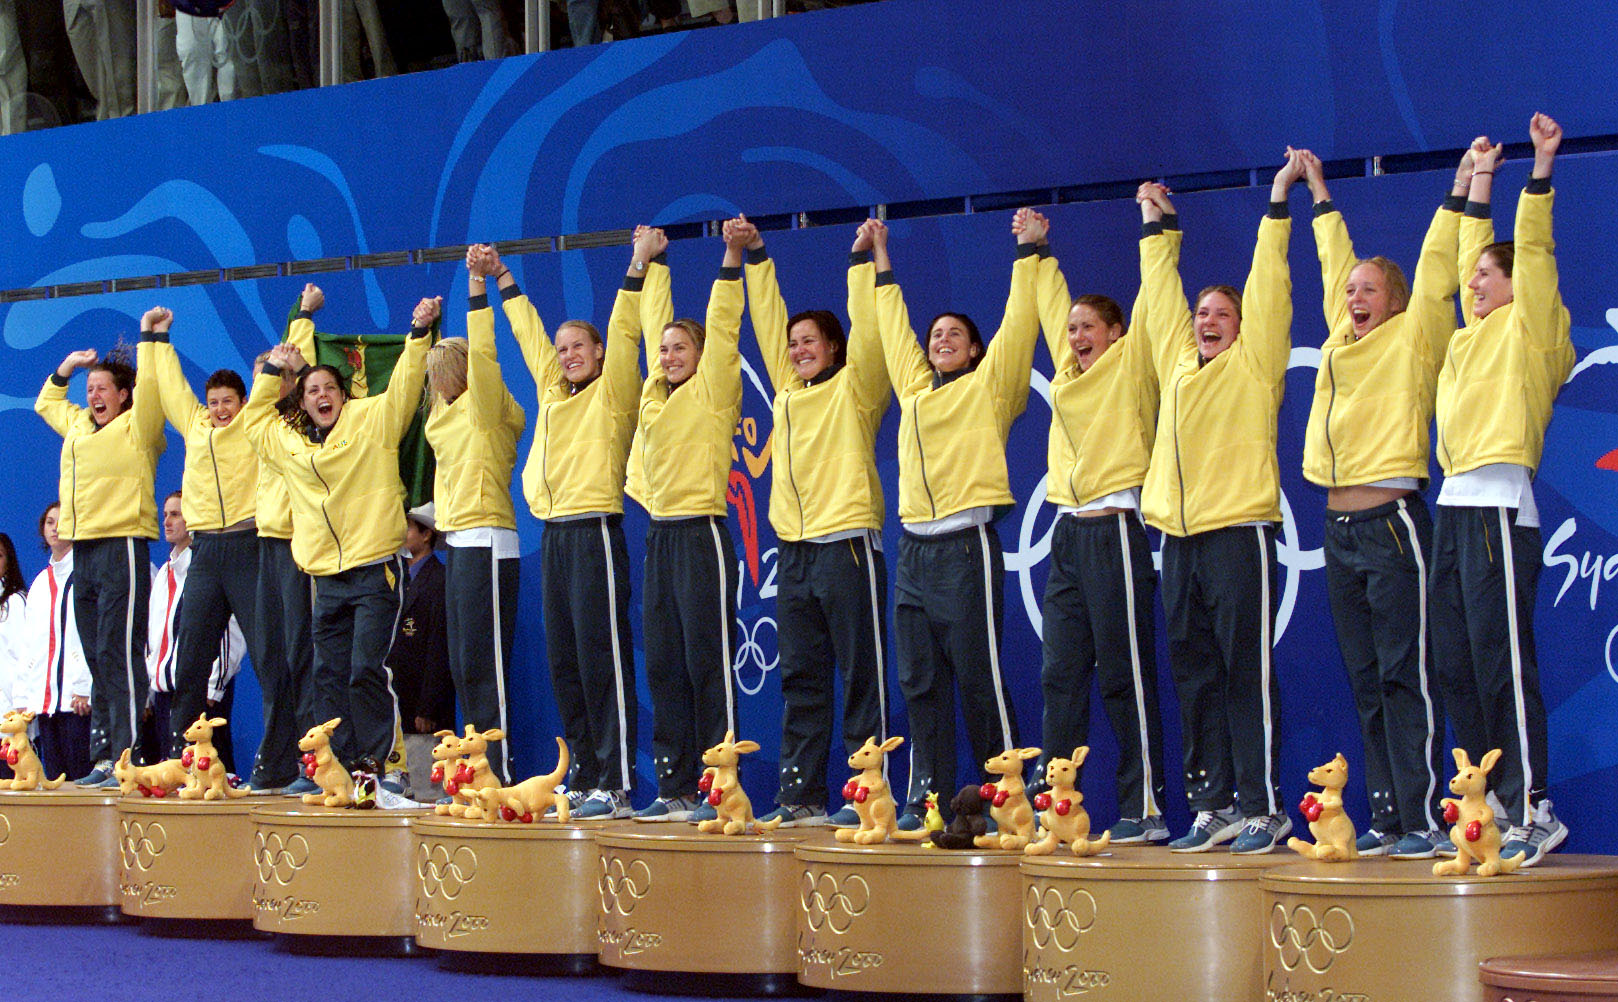 Image of the Australian Women's Water Polo team receiving their gold medal at the Sydney 2000 Olympics.